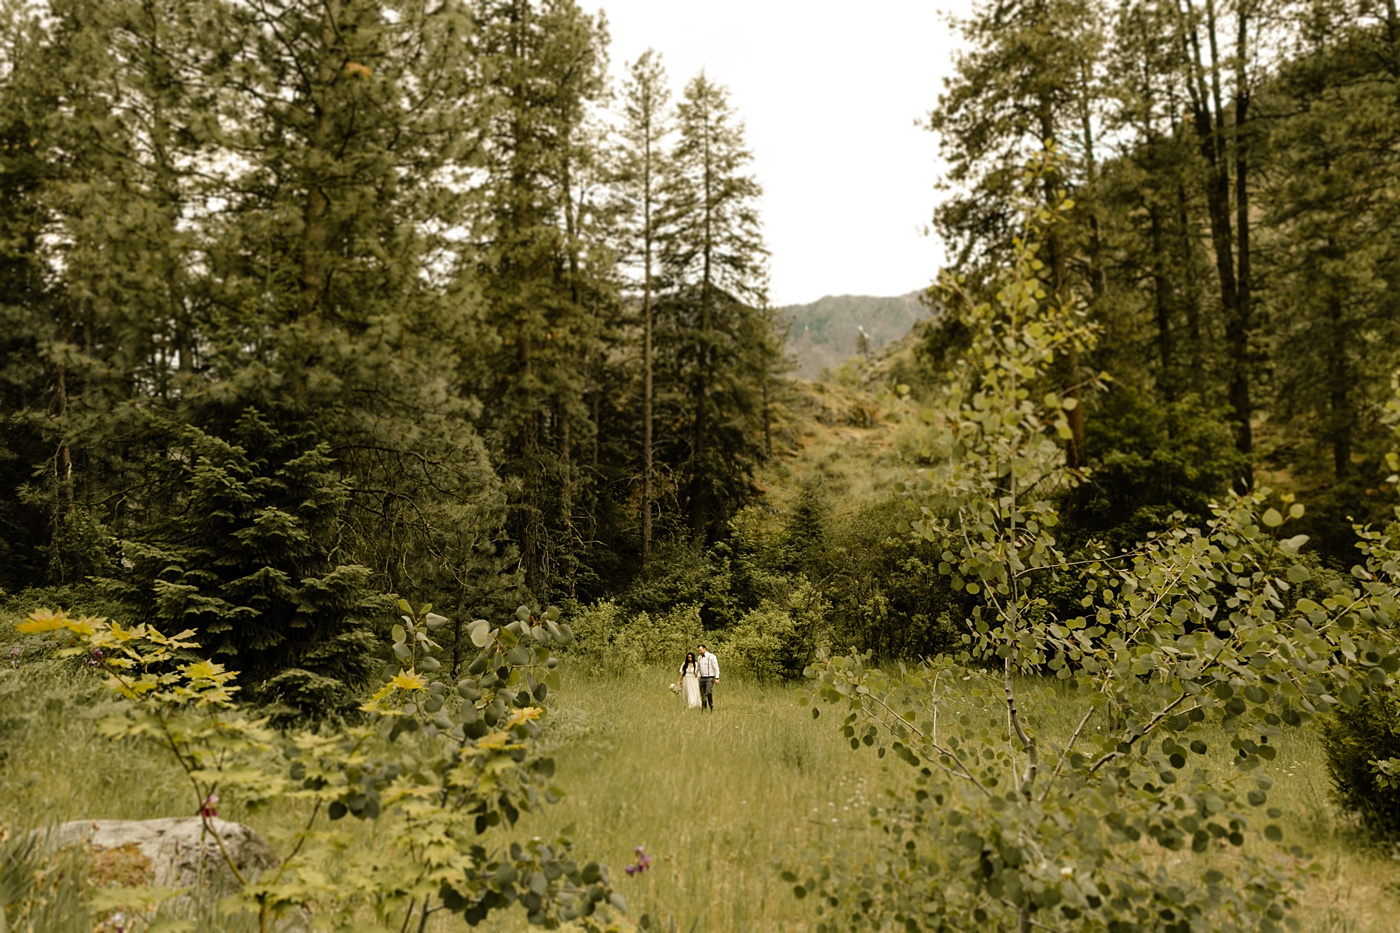 Washington elopement photographer open field in the mountains